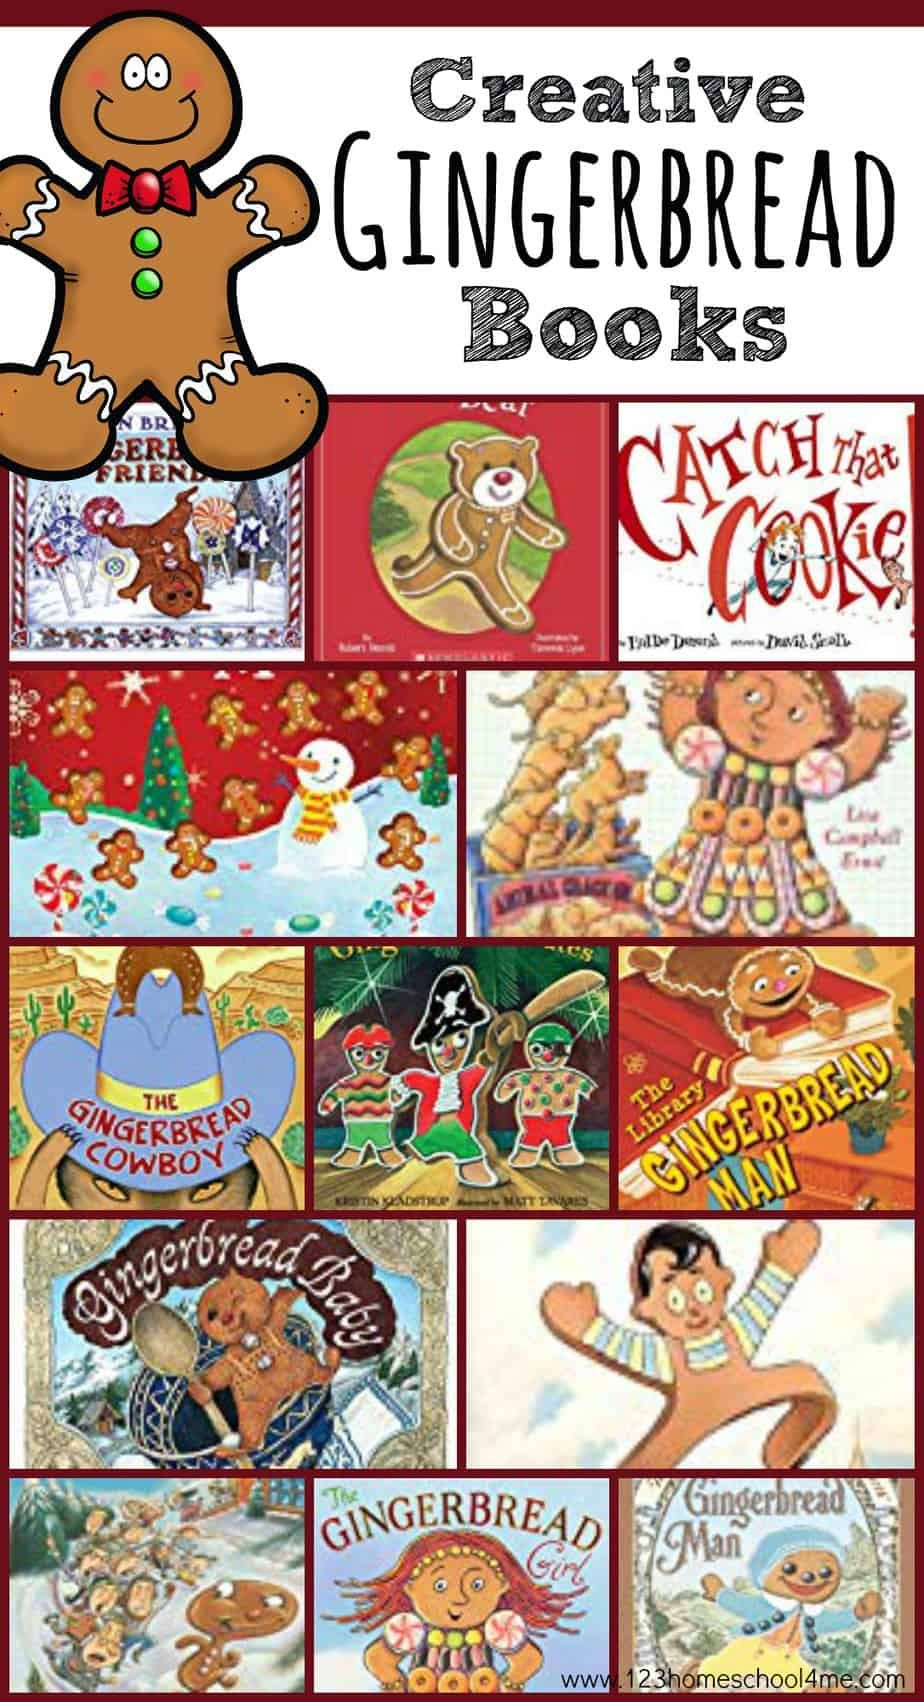 16 Gingerbread Books For Kids Christmas Stories For Kids